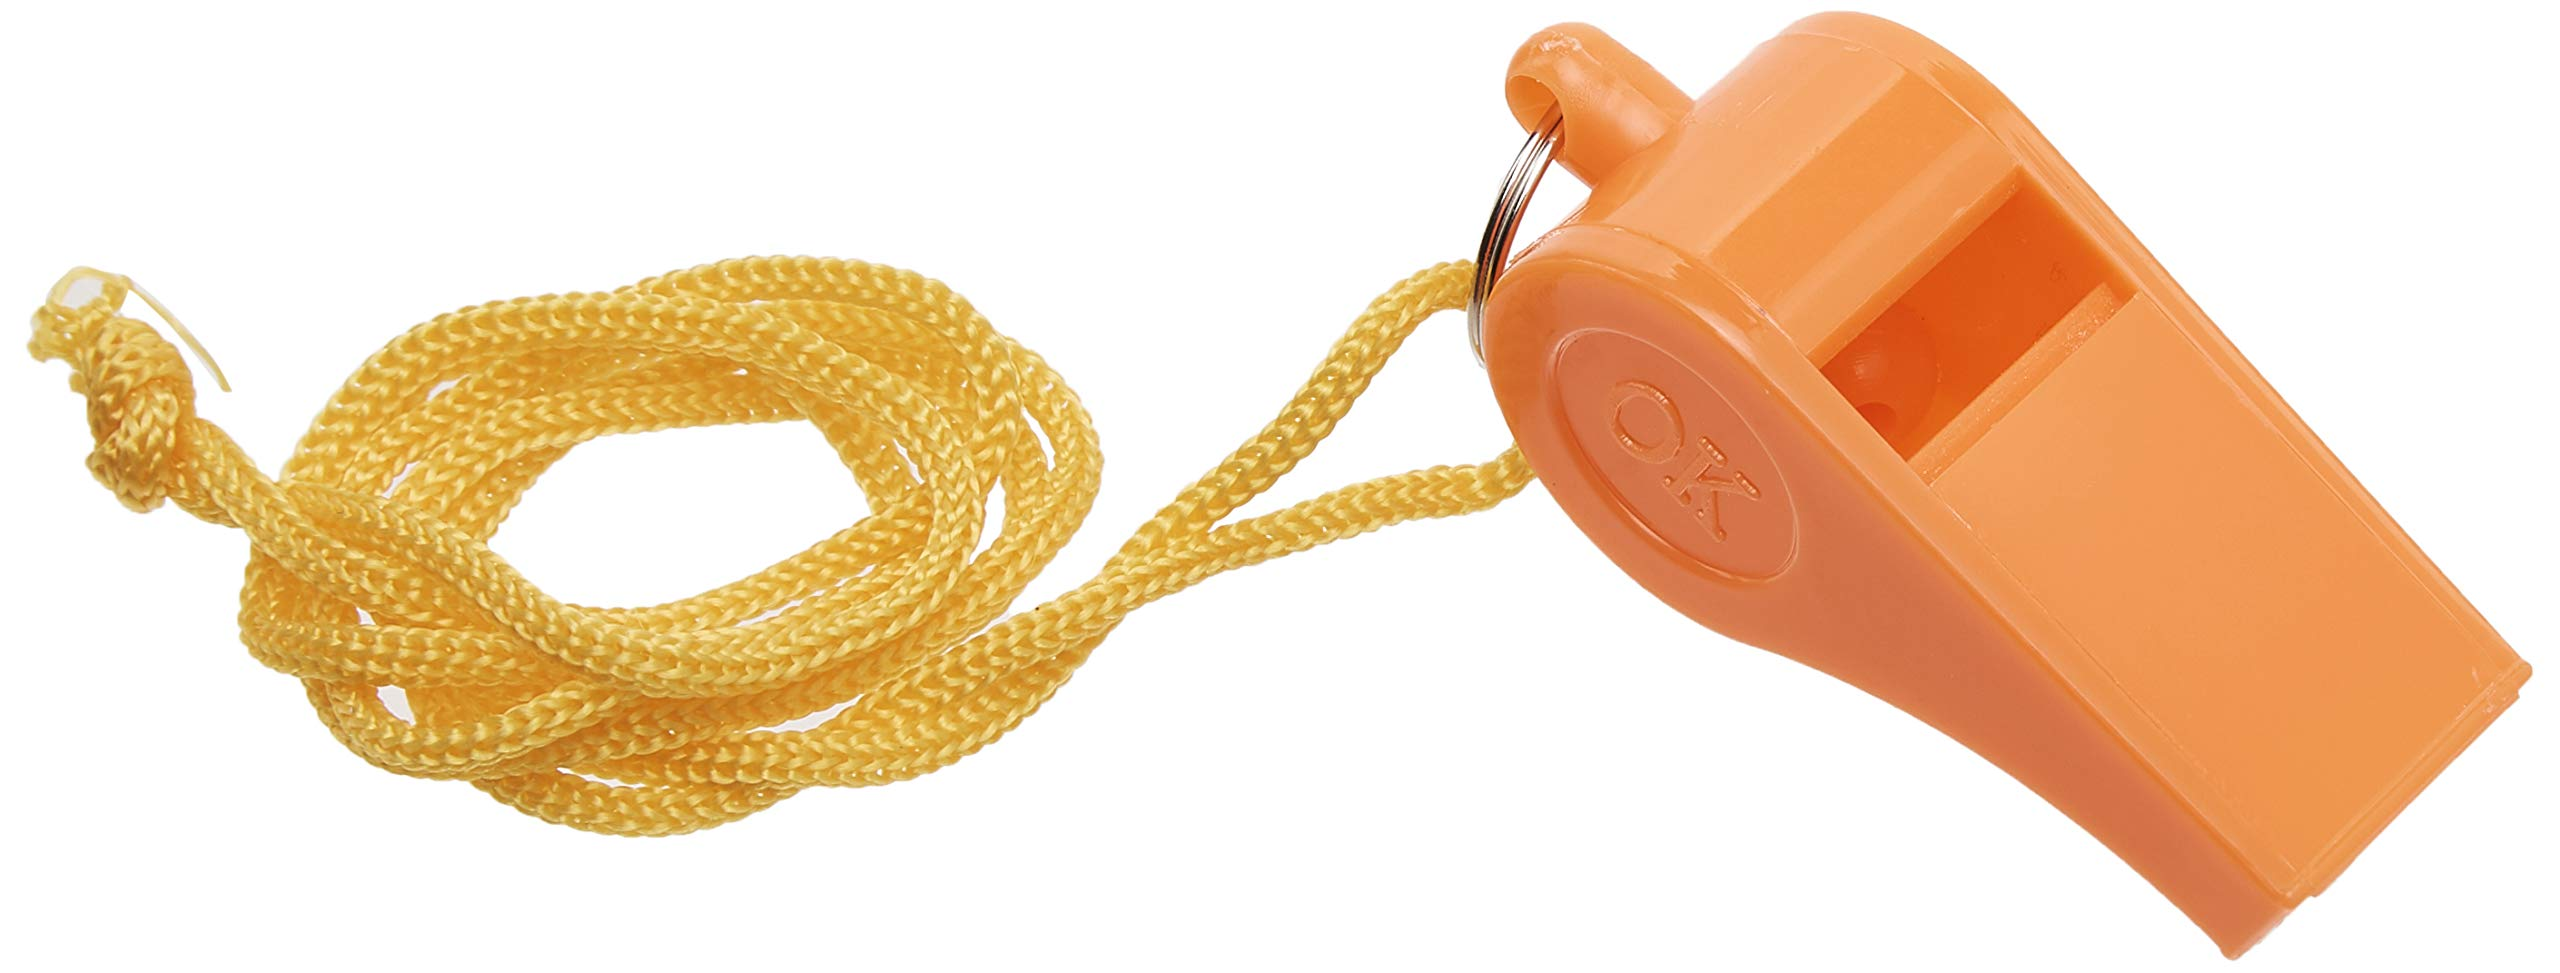 Bulk Lot of 100 NEW Safety Plastic Whistle with Lanyard Orange/Yellow by SE